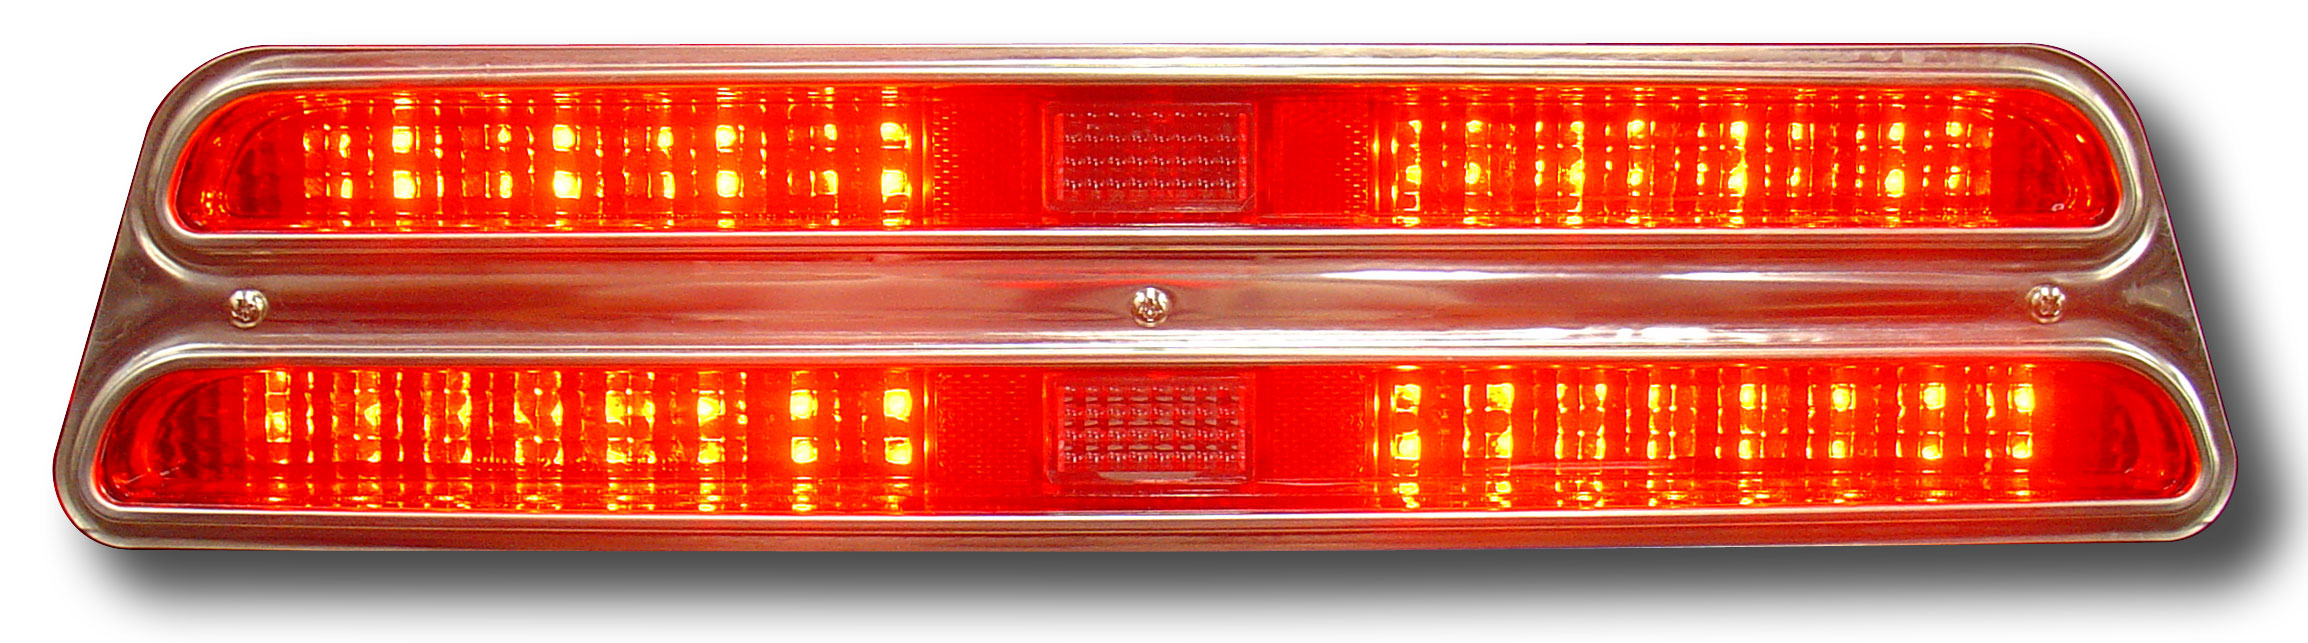 1969 Pontiac Firebird Digital Tail Lights.jpg